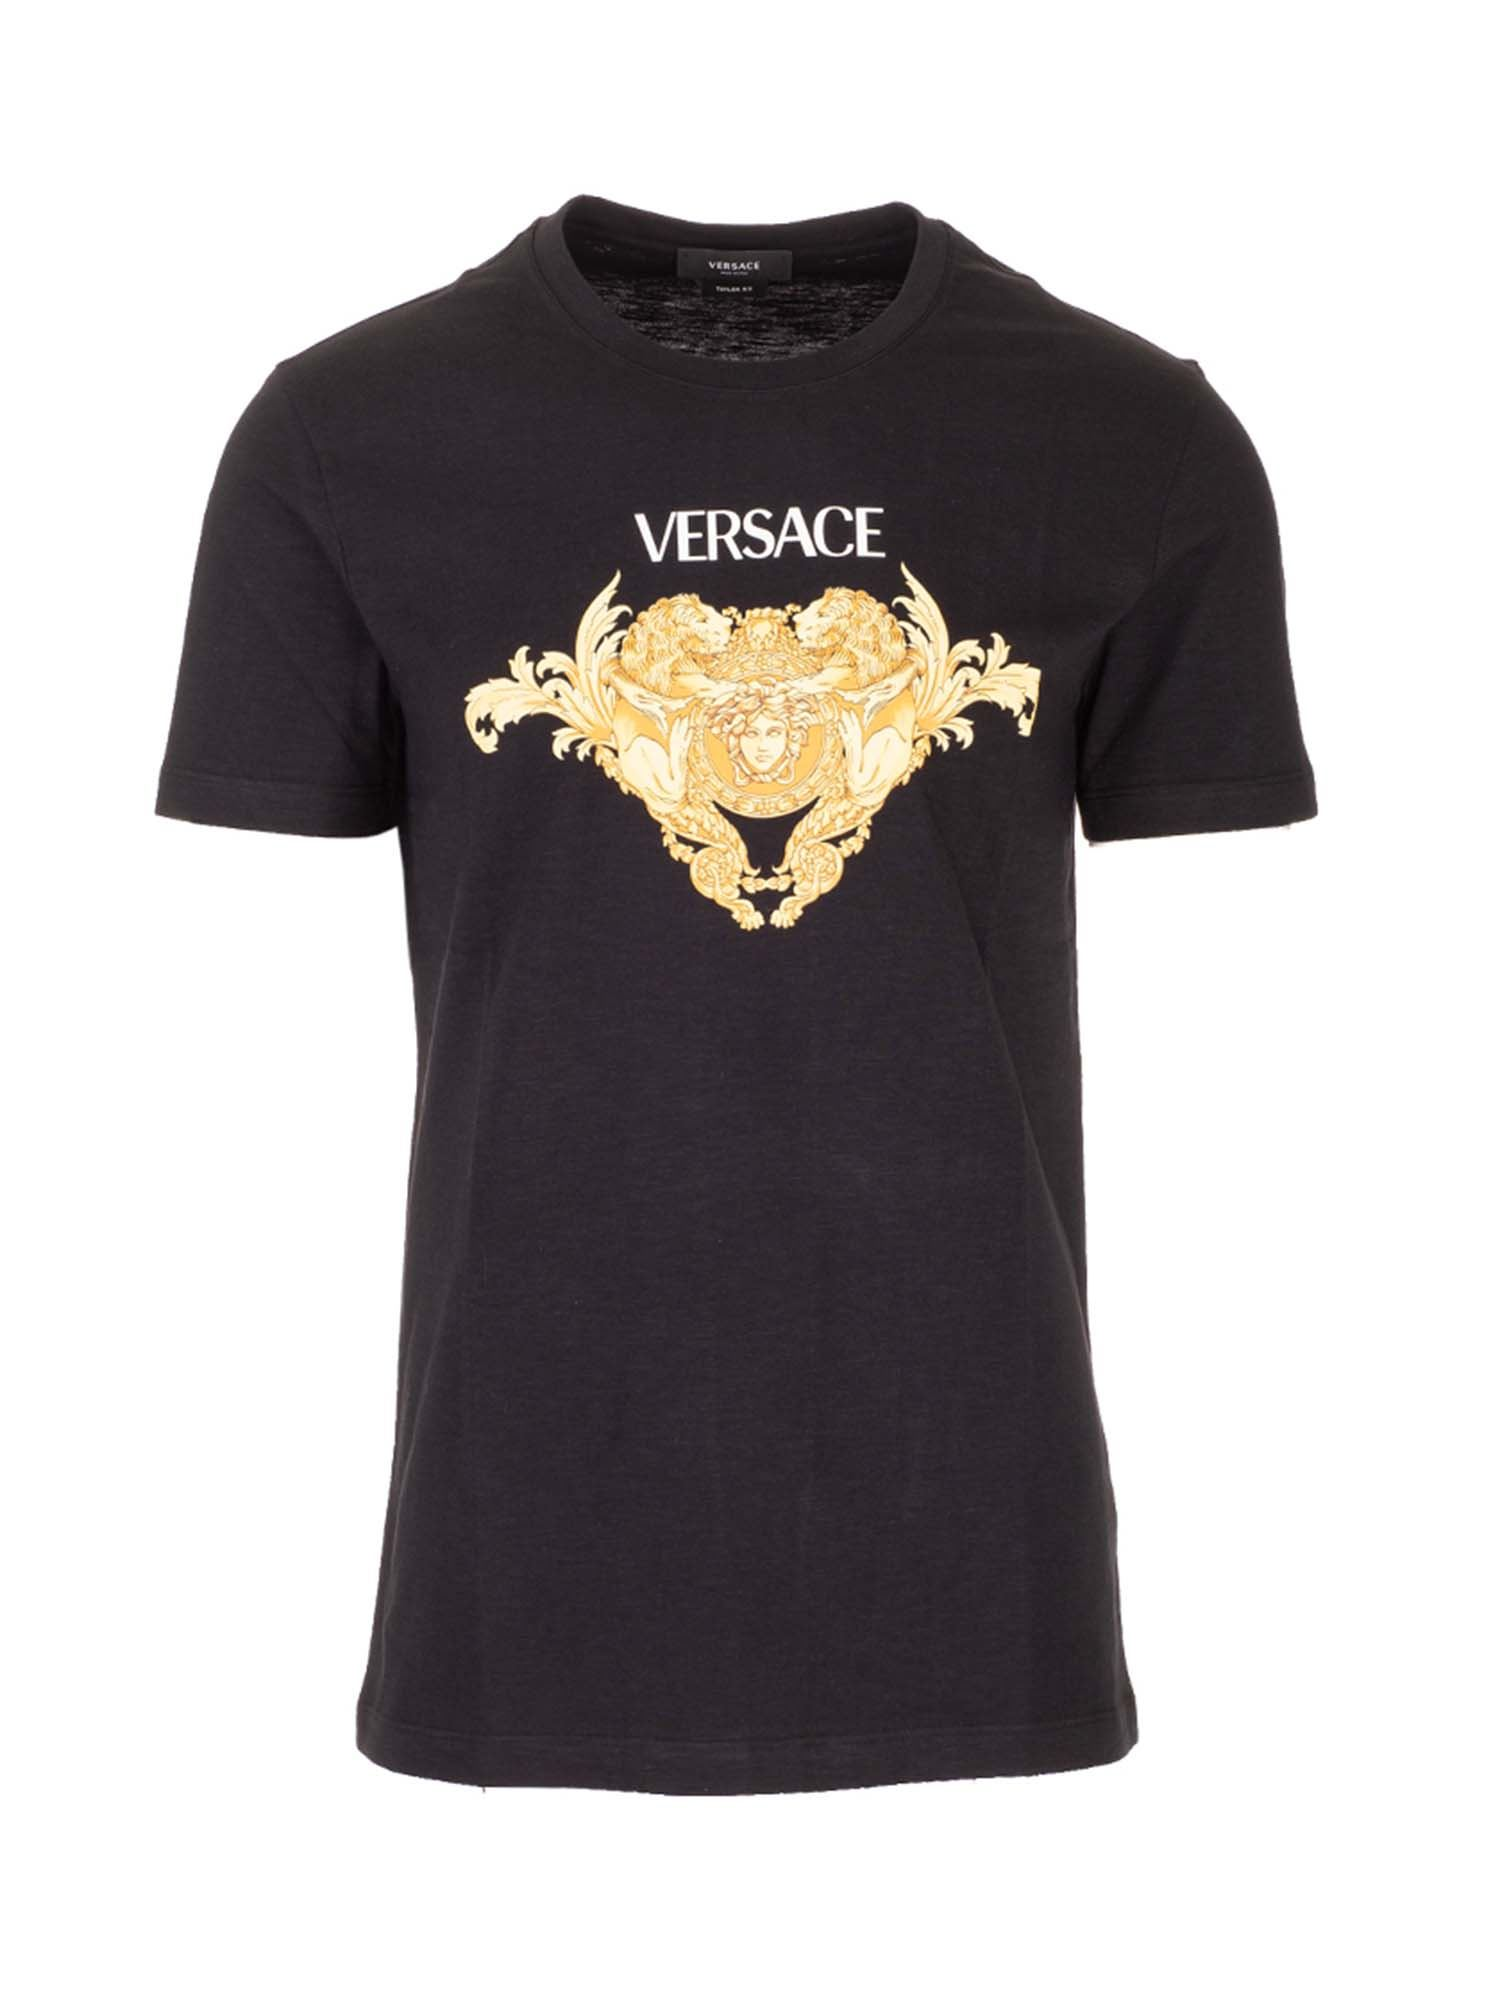 Versace MEDUSA BAROCCO T-SHIRT IN BLACK